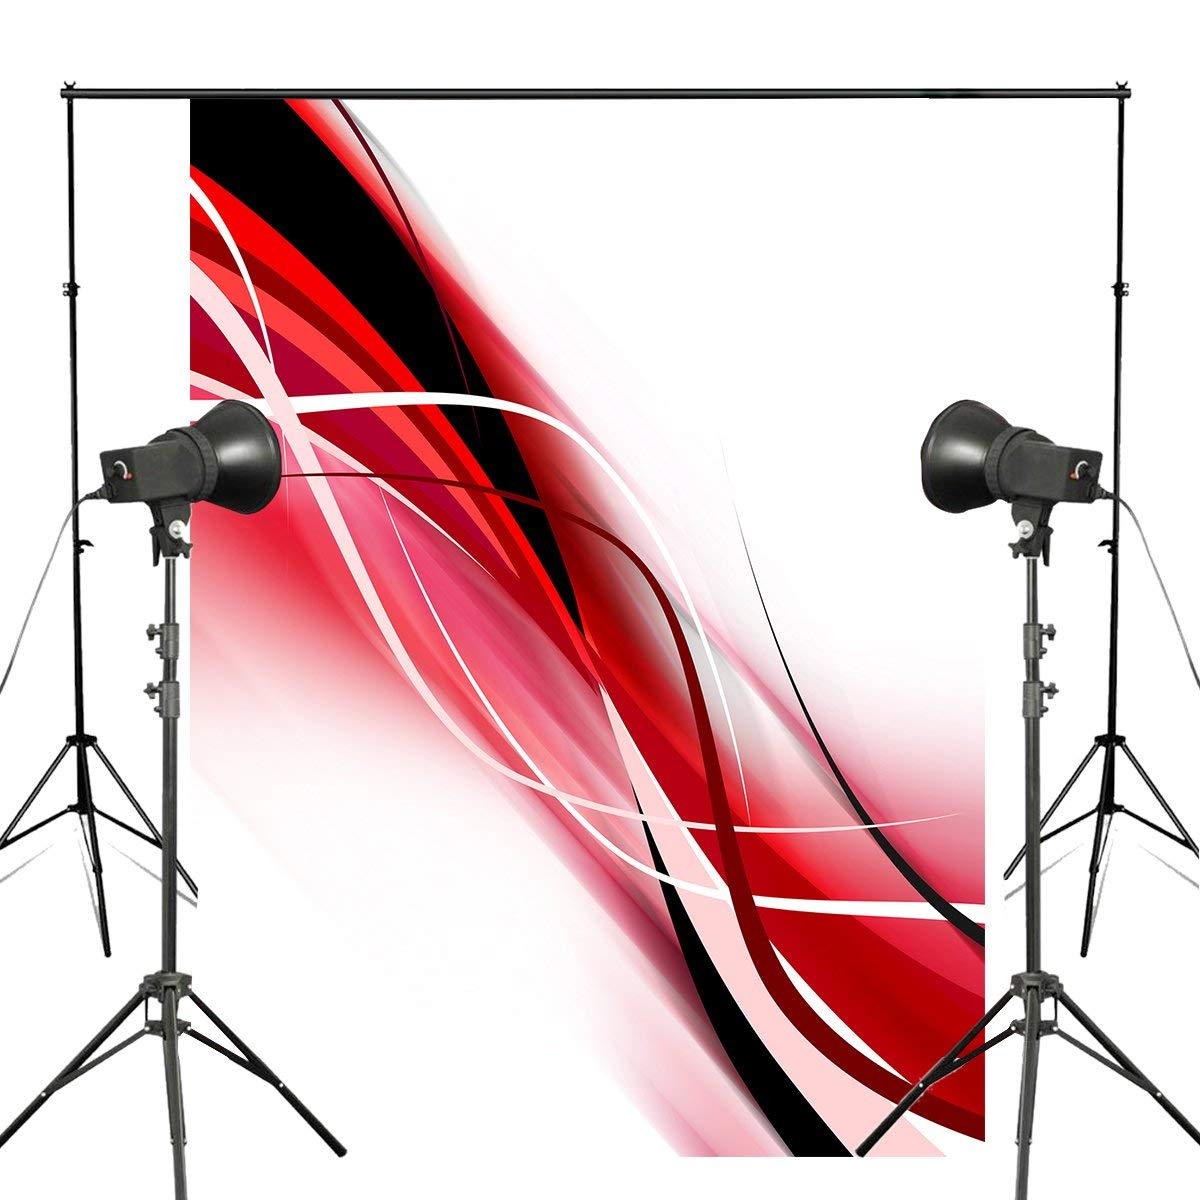 Us 20 36 Exquisite White Photography Backdrop Abstract Black Red Line Wallpaper Background Art Photo Studio Background Wall 5x7ft In Photo Studio